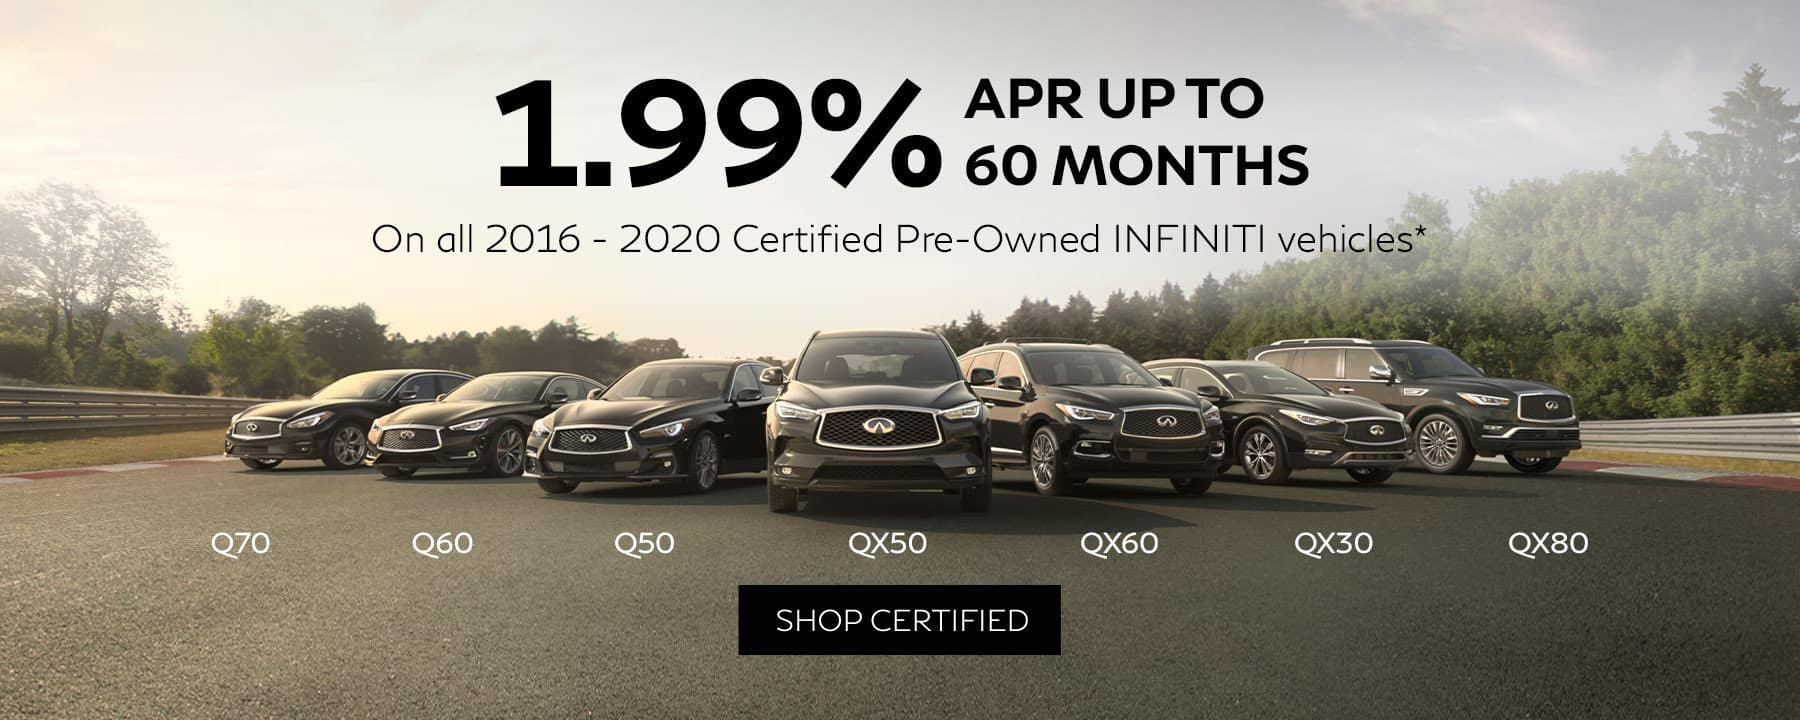 1.99% APR financing up to 60 months on all 2016 to 2020 model year certified pre-owned INFINITI vehicles